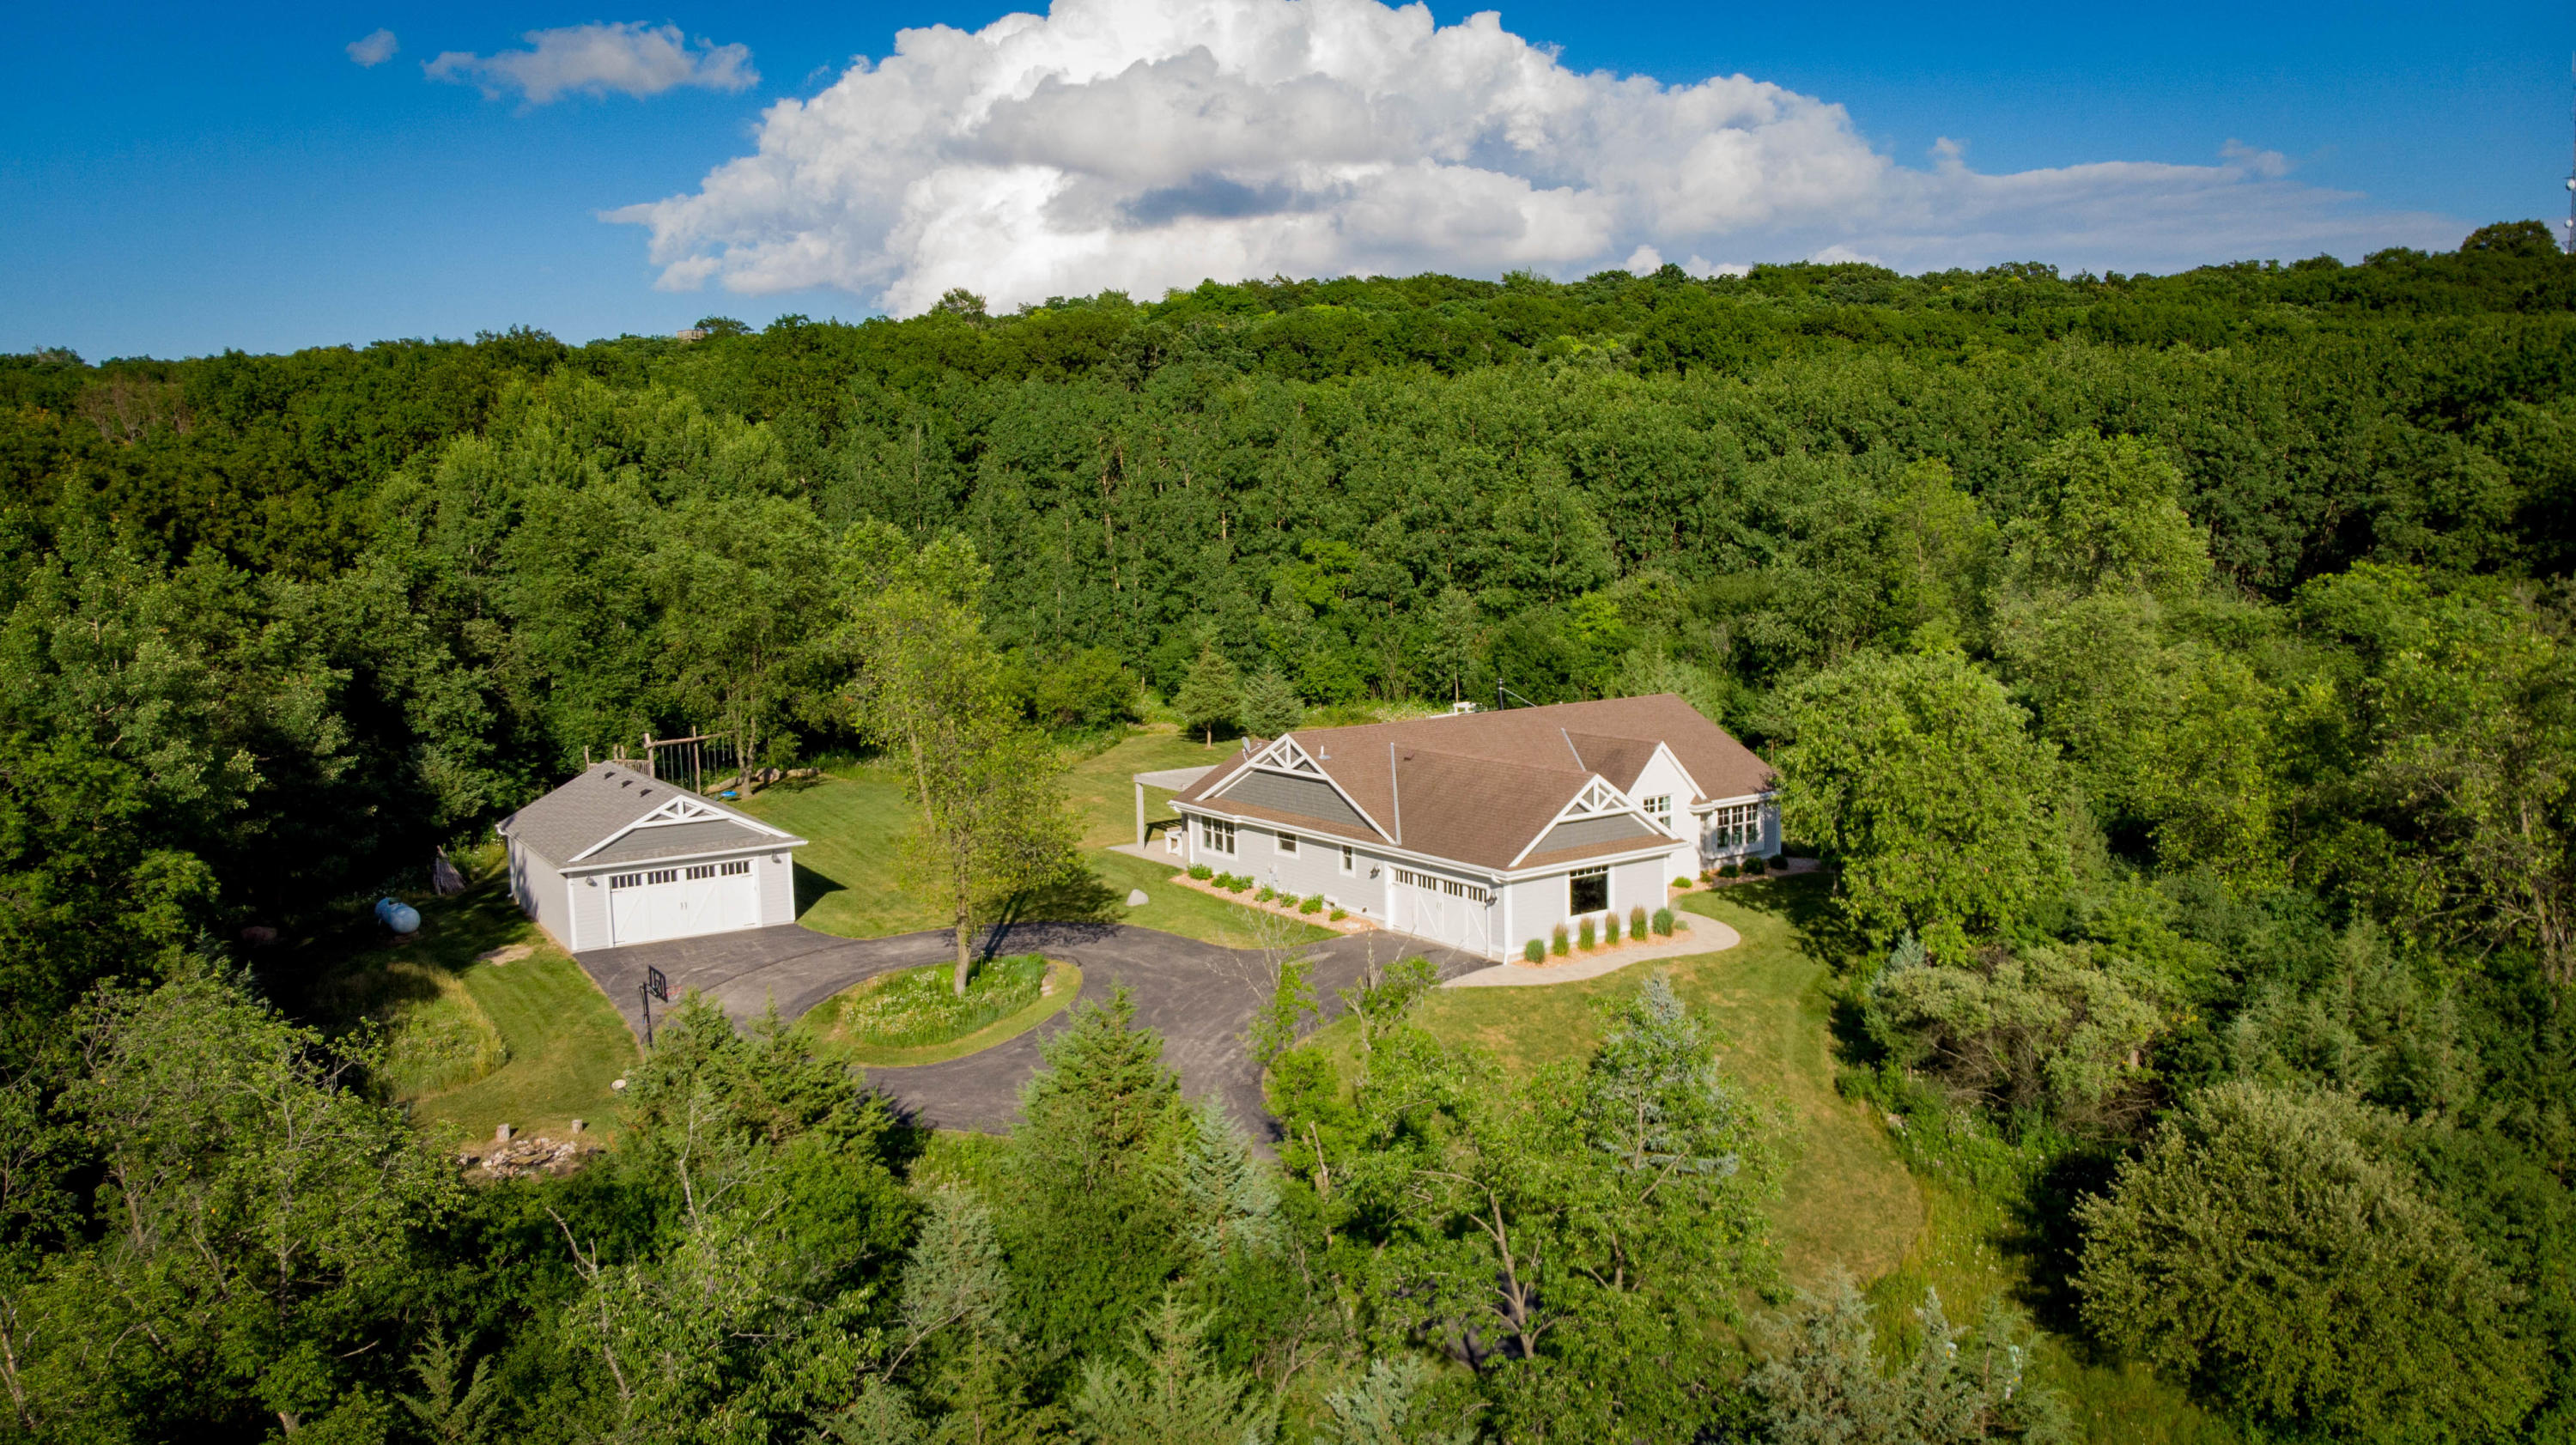 S4W32726 Government Hill Rd, Delafield, Wisconsin 53018, 5 Bedrooms Bedrooms, 9 Rooms Rooms,3 BathroomsBathrooms,Single-Family,For Sale,Government Hill Rd,1698965